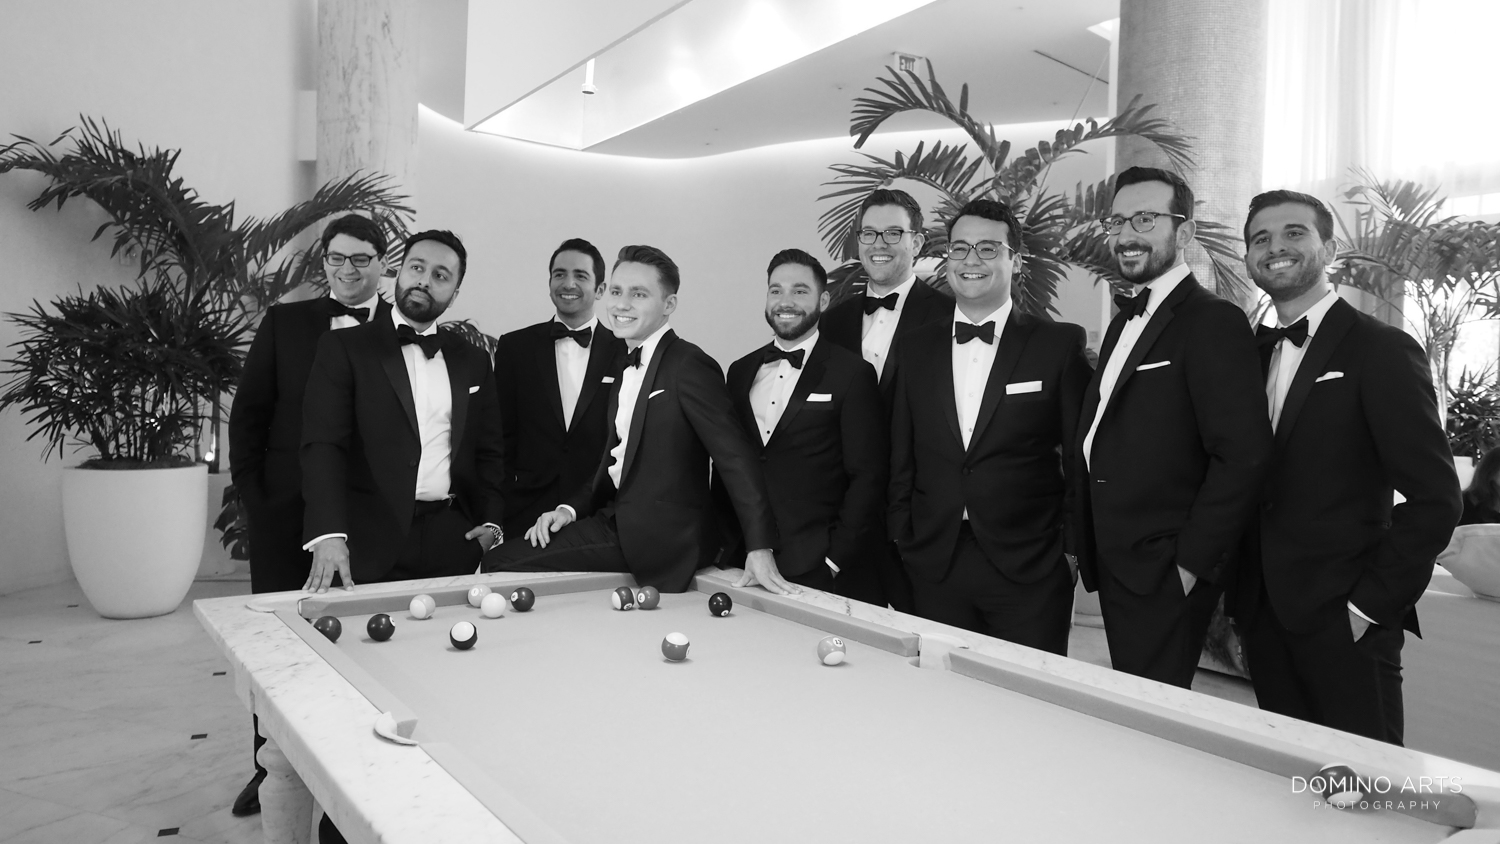 Cool wedding picture of groomsman at The Miami Beach Edition